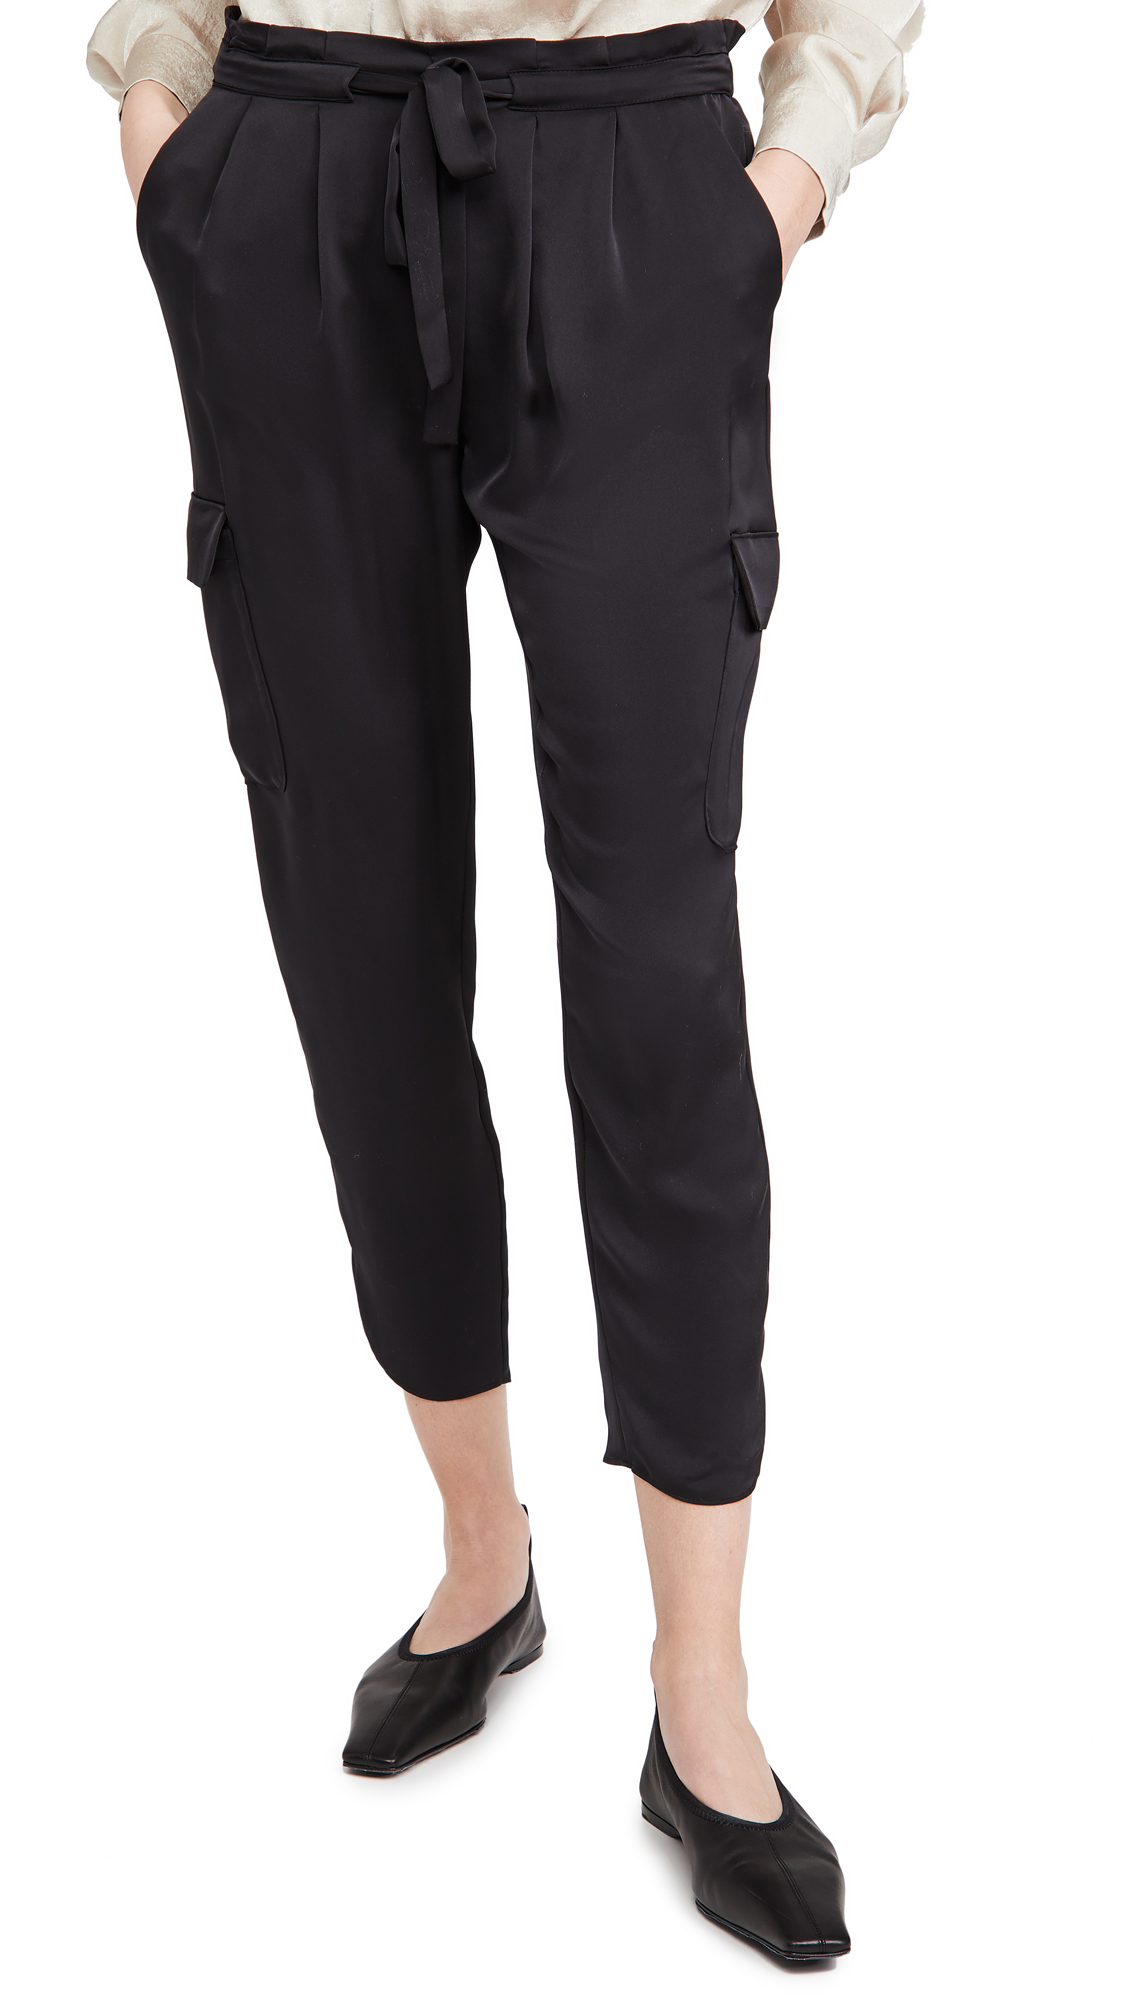 Ramy Brook Satin Pocket Allyn Pants